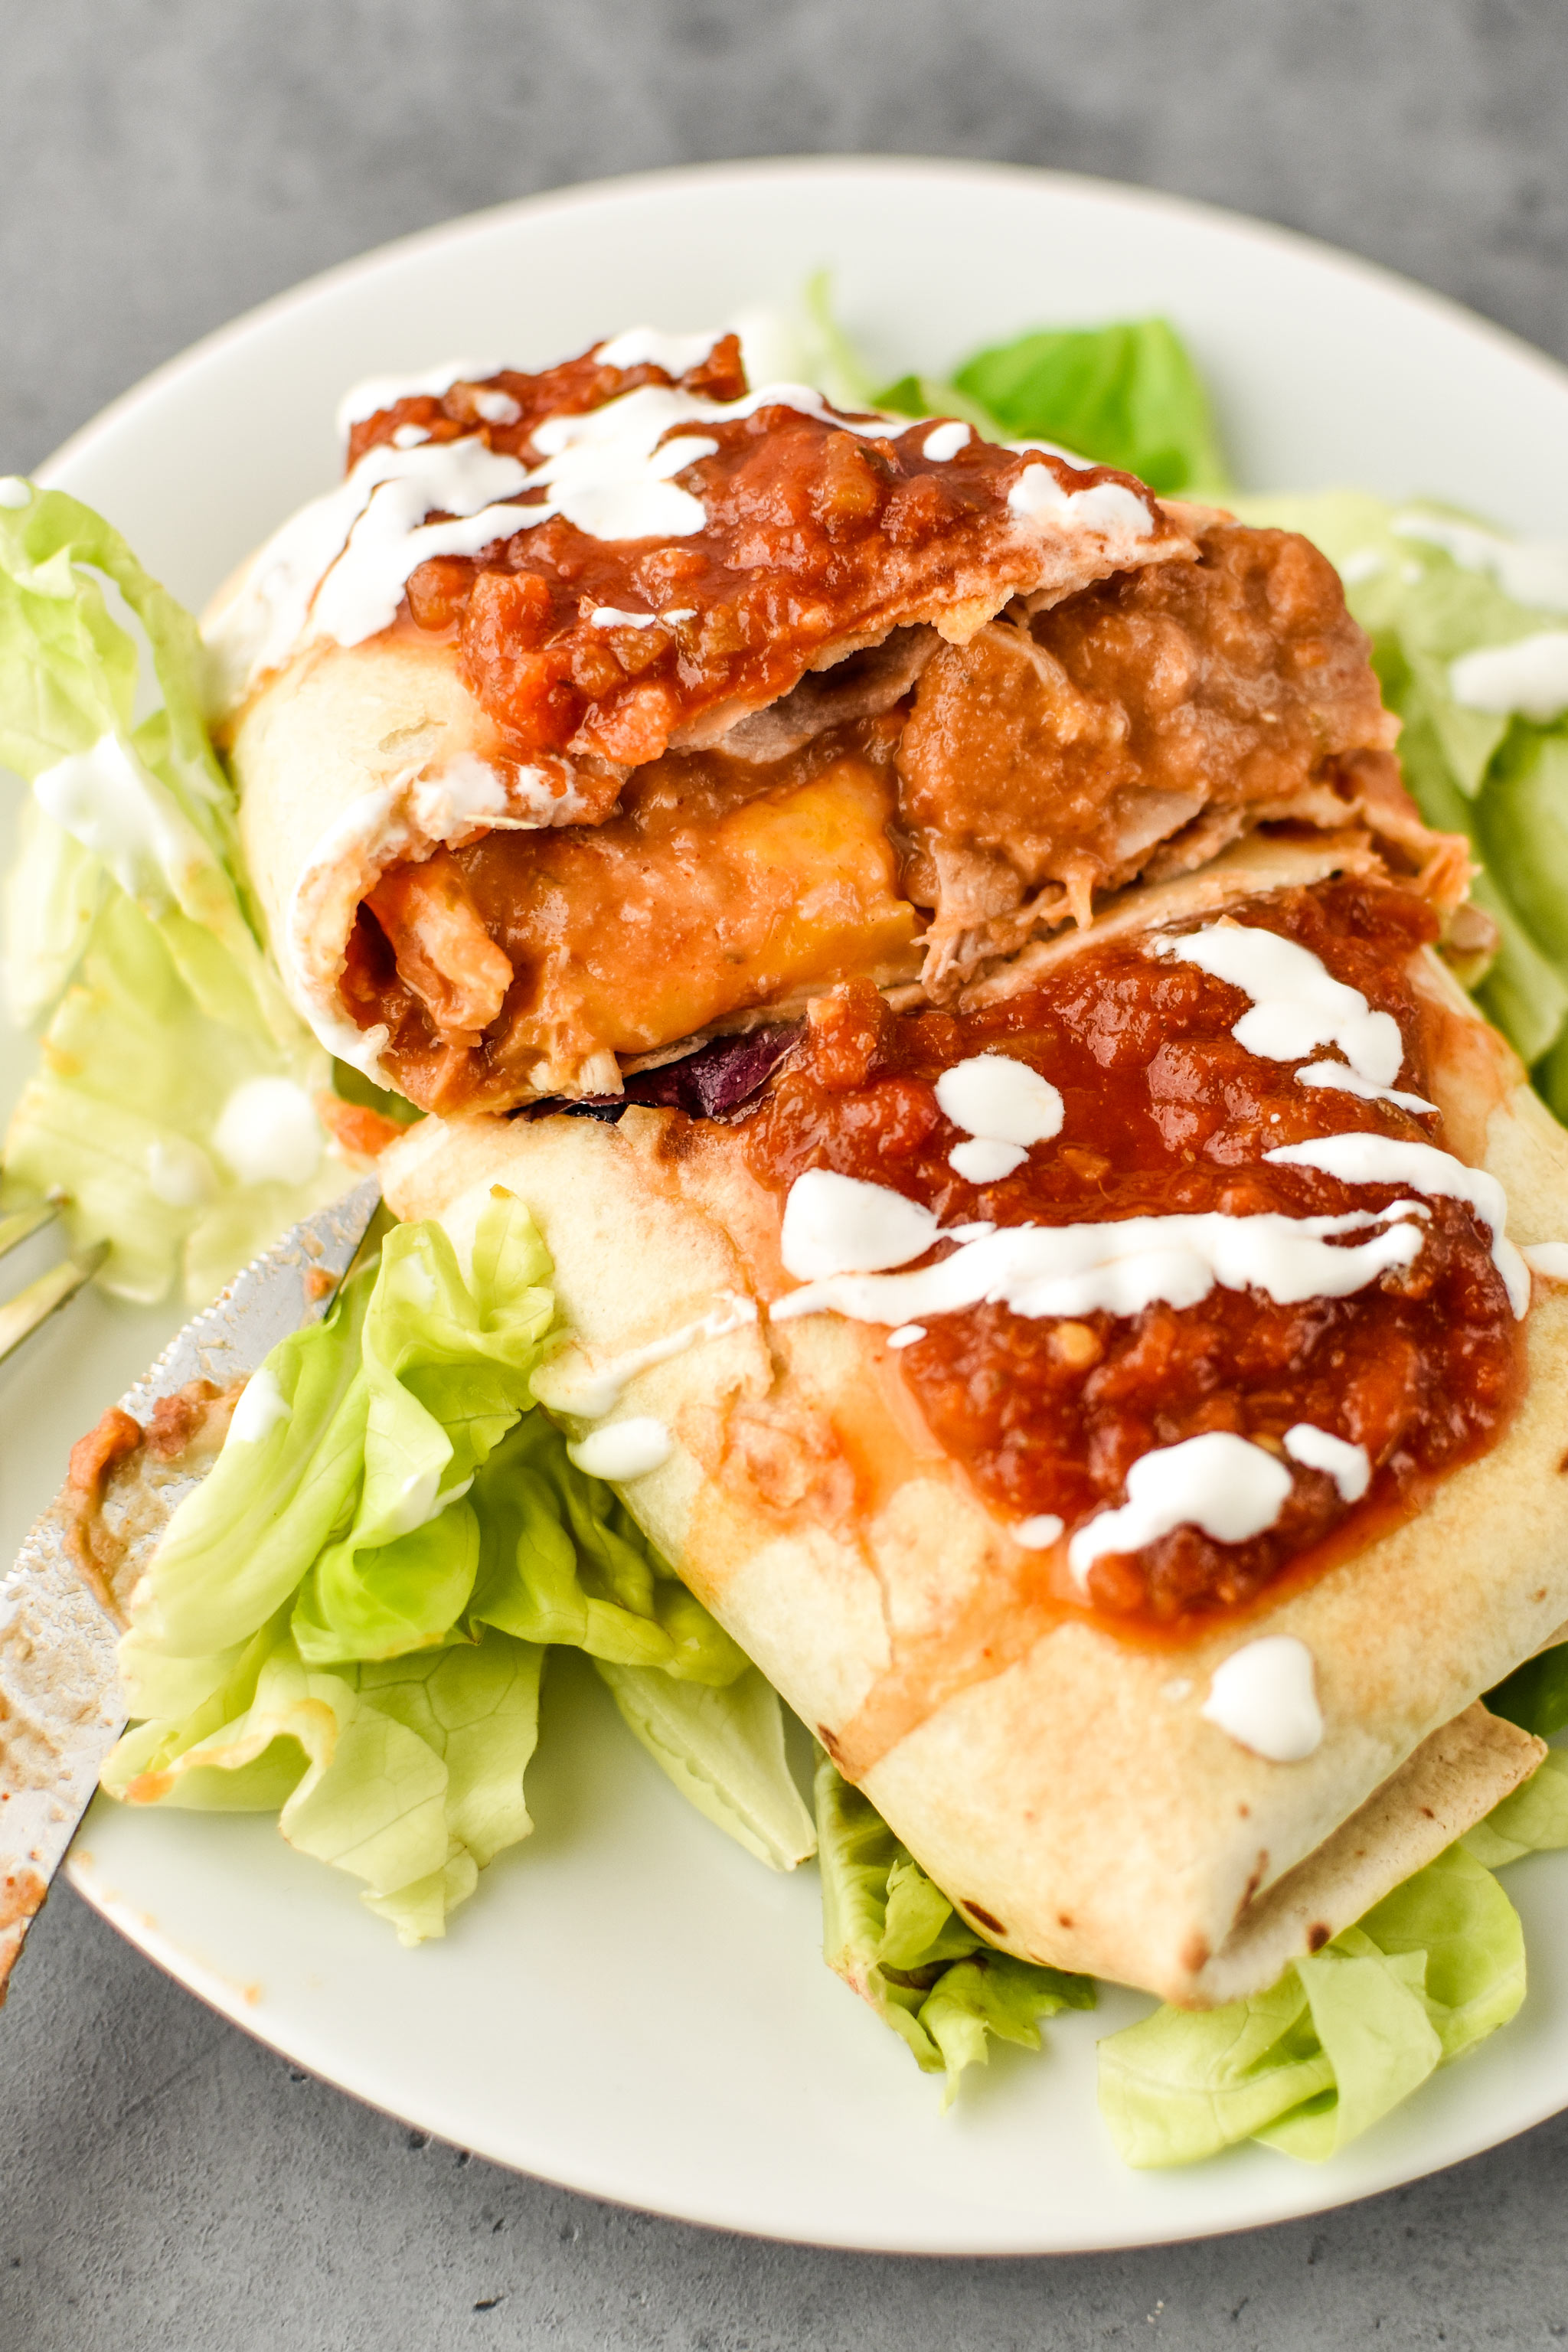 delicious chimichangas - how to make chimichangas in an air fryer